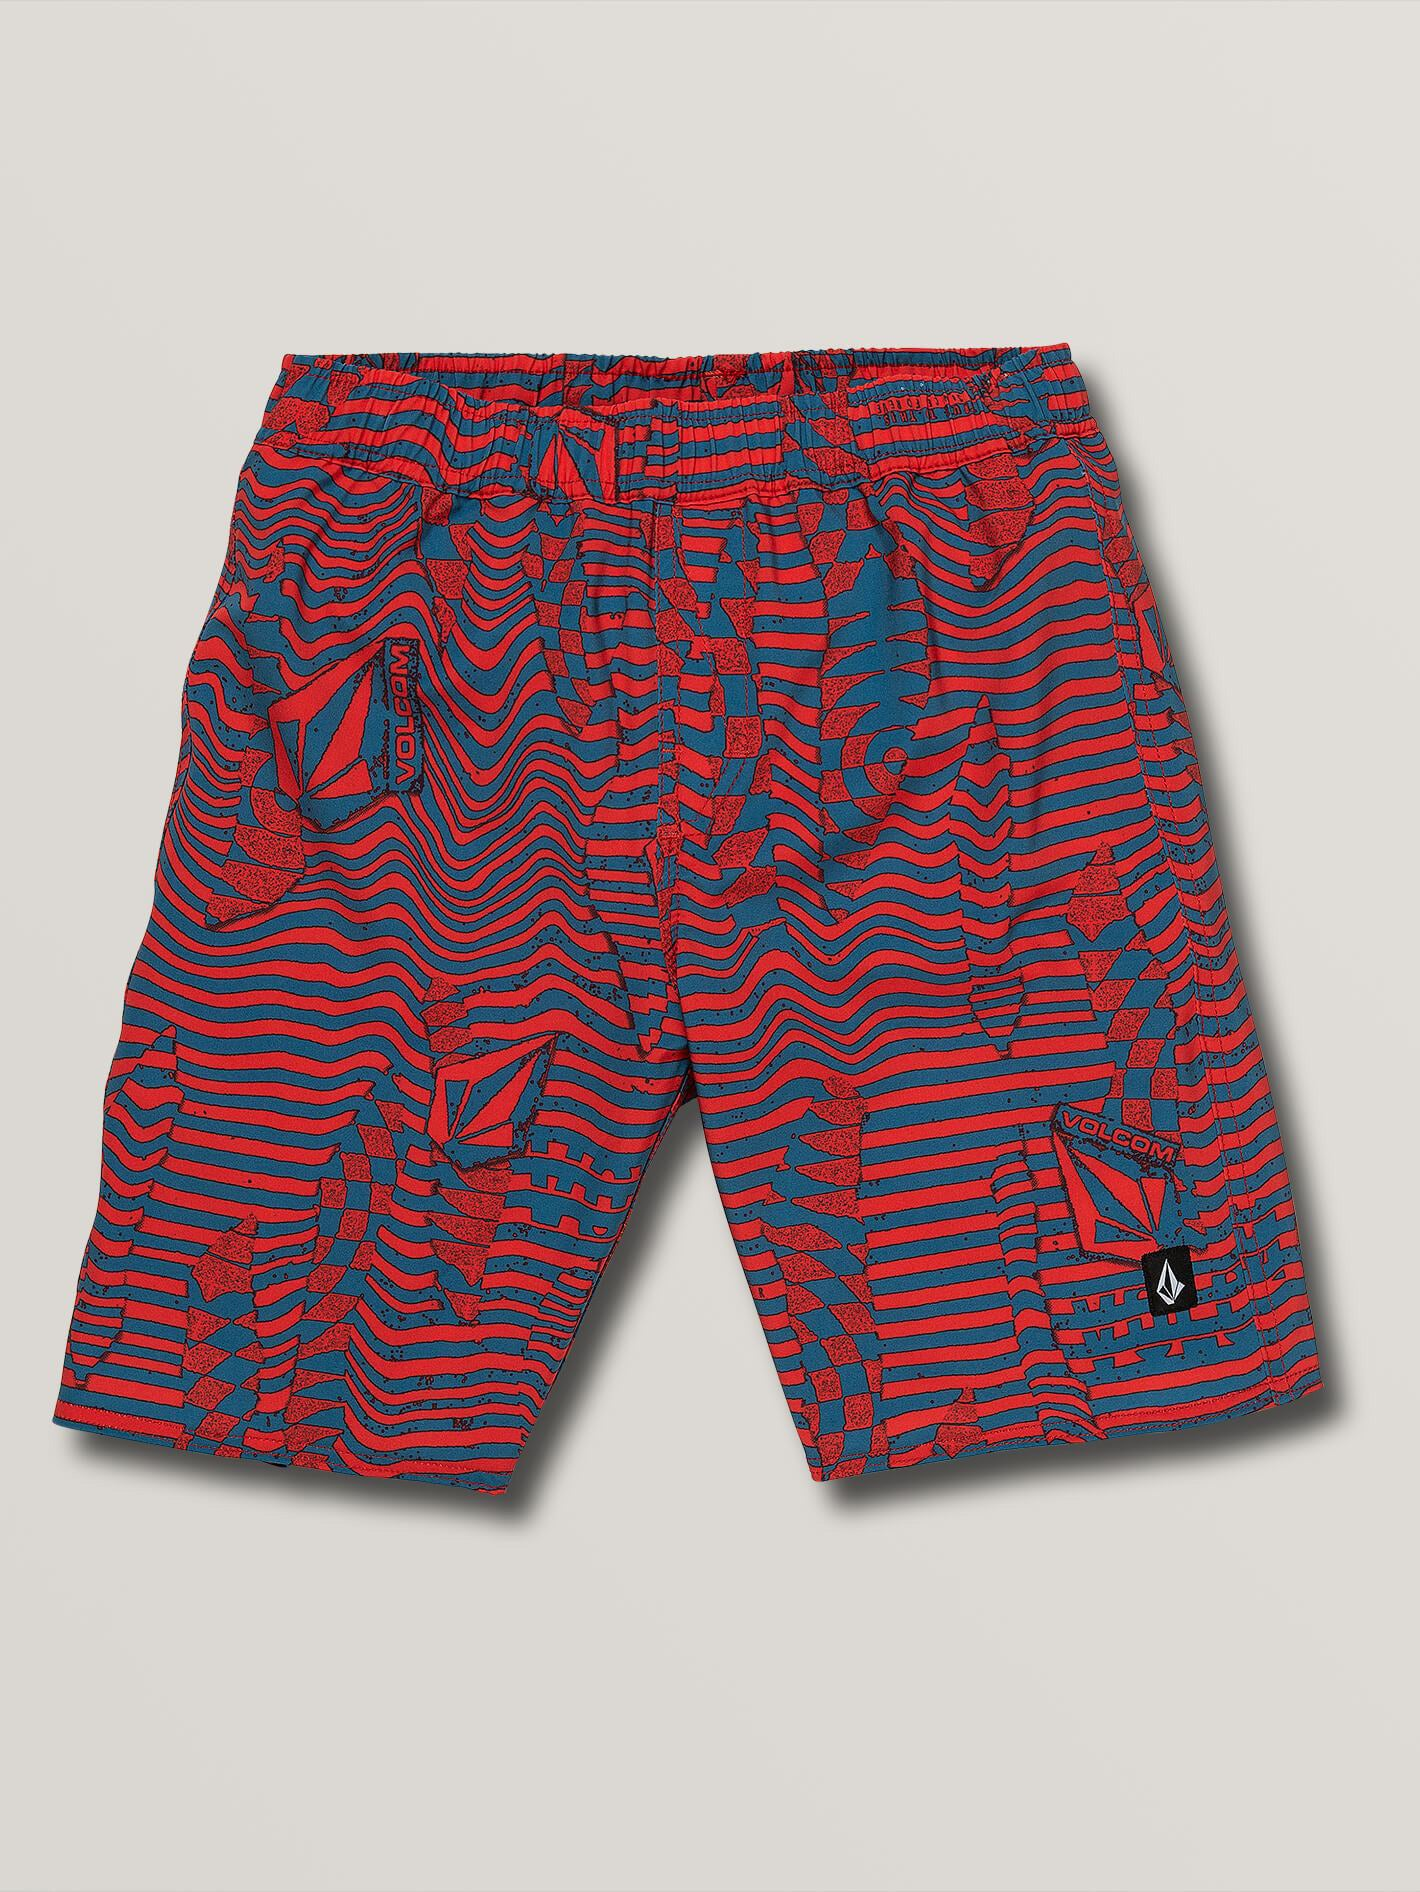 Logo Shifter 17 Boardshorts (Boys 7-14)